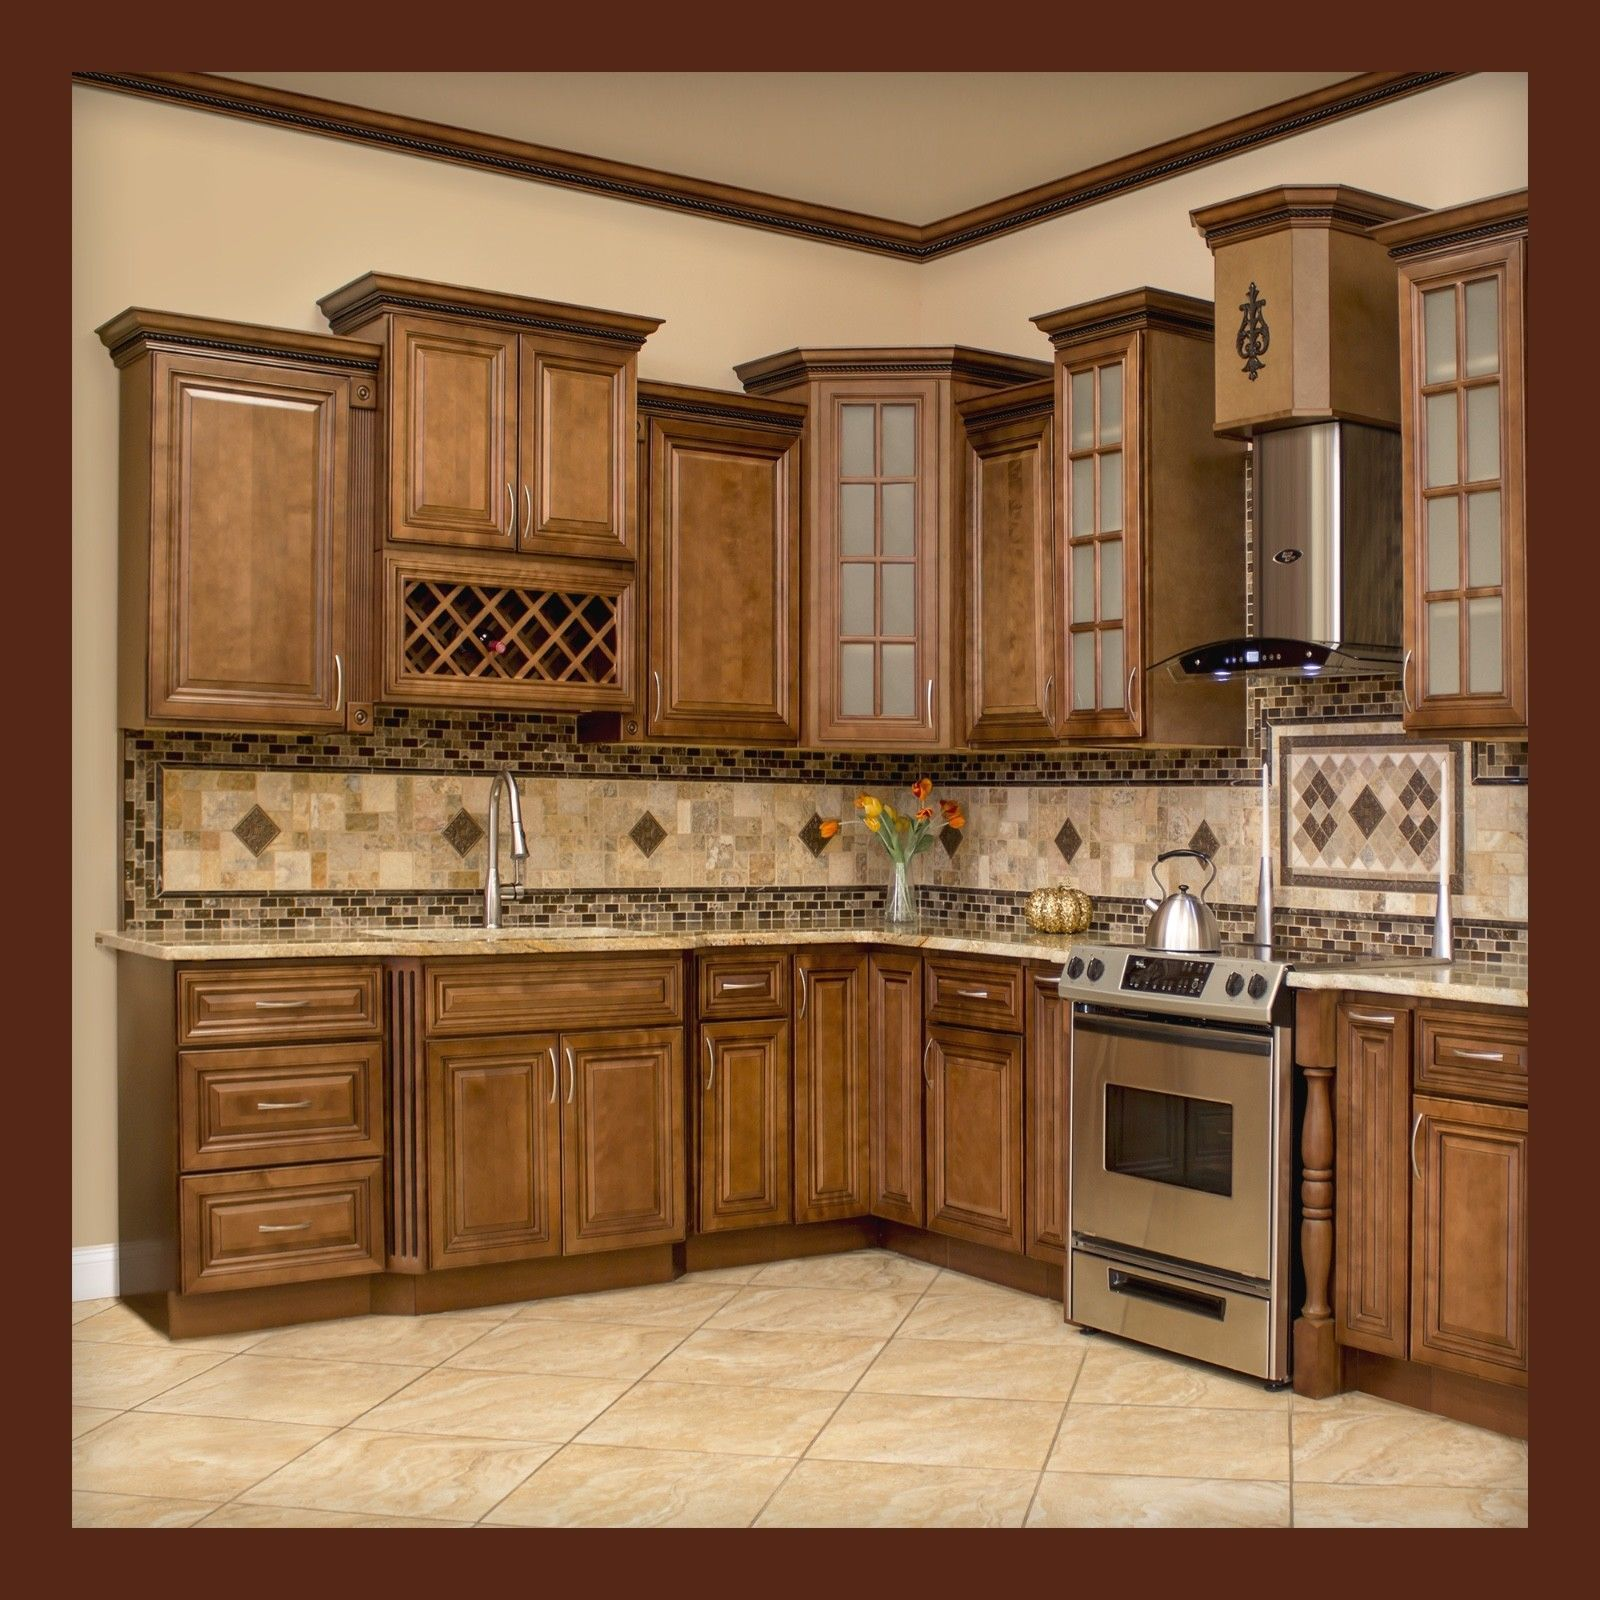 10x10 All Solid Wood Kitchen Cabinets Geneva Rta 816124022473 Ebay In 2020 Wood Kitchen Cabinets Solid Wood Kitchen Cabinets Solid Wood Kitchens